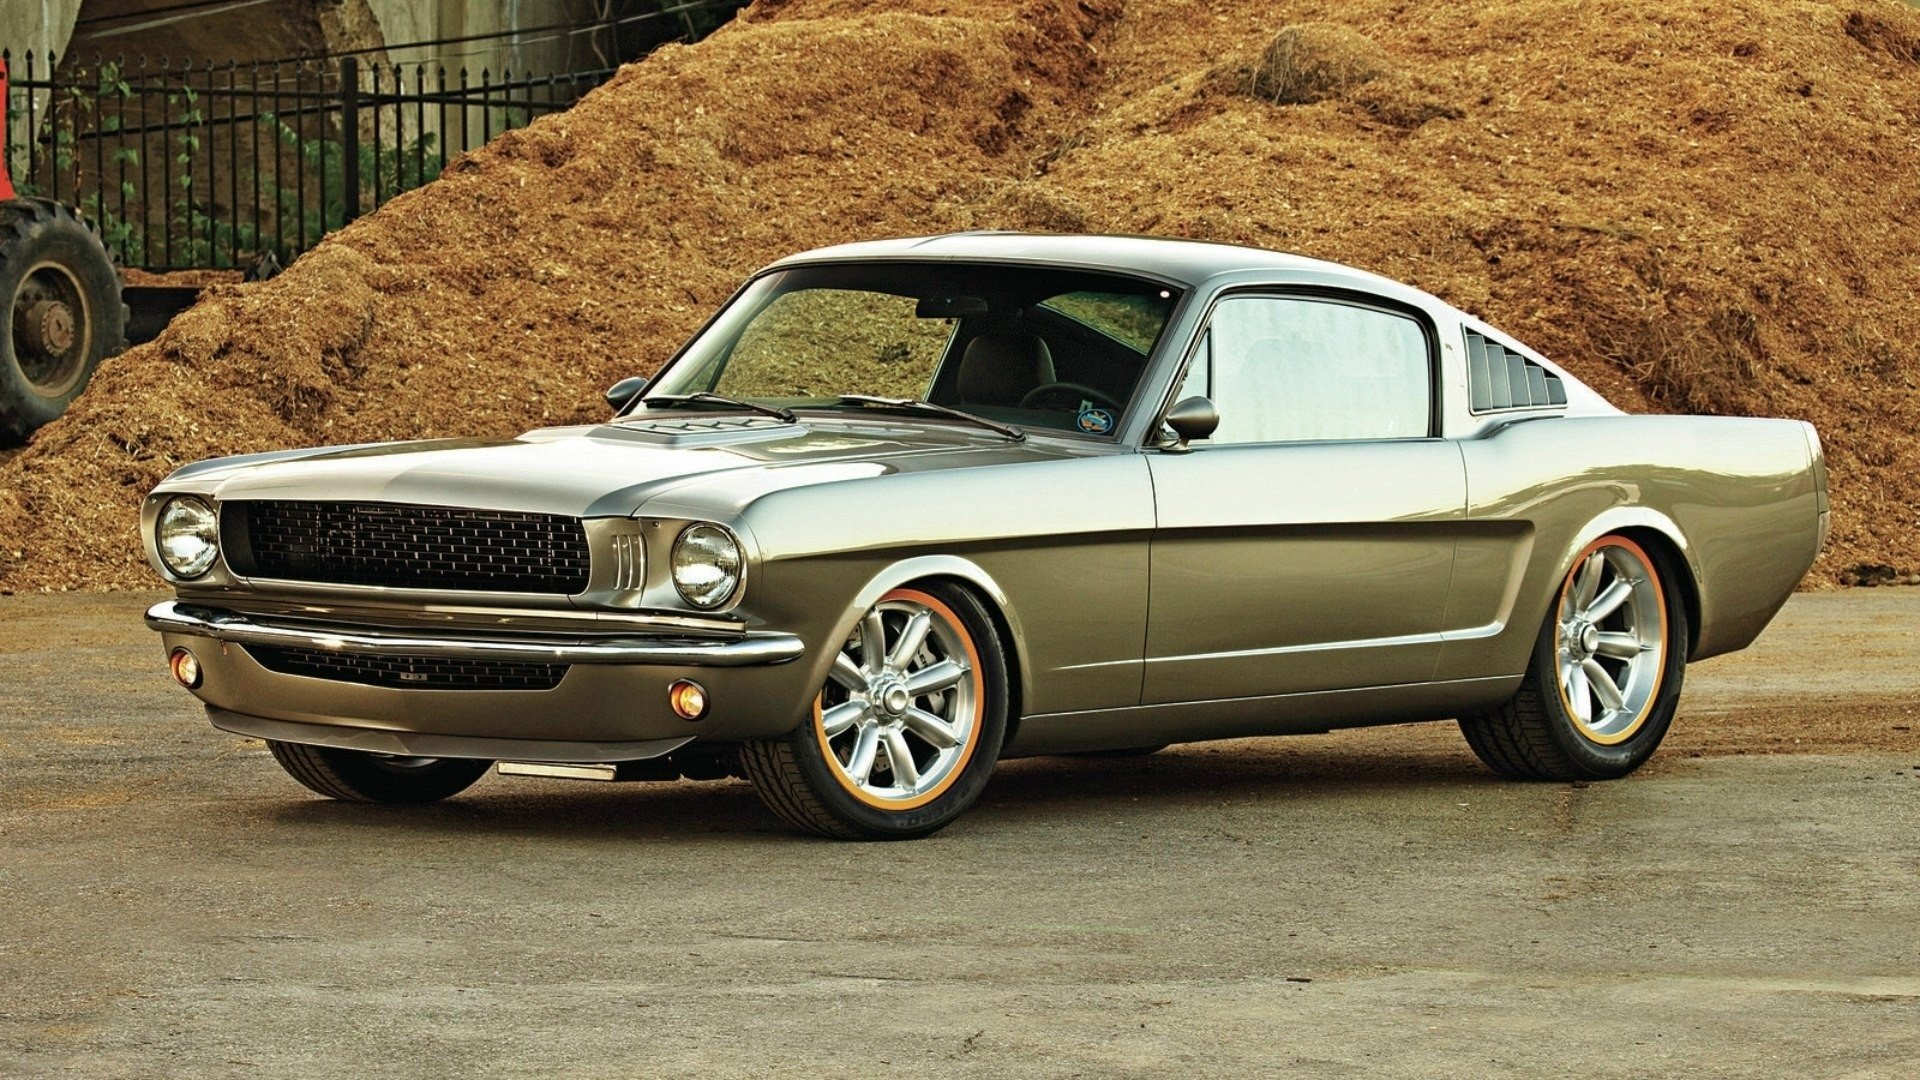 1 1966 ford mustang hd wallpapers   background images - wallpaper abyss